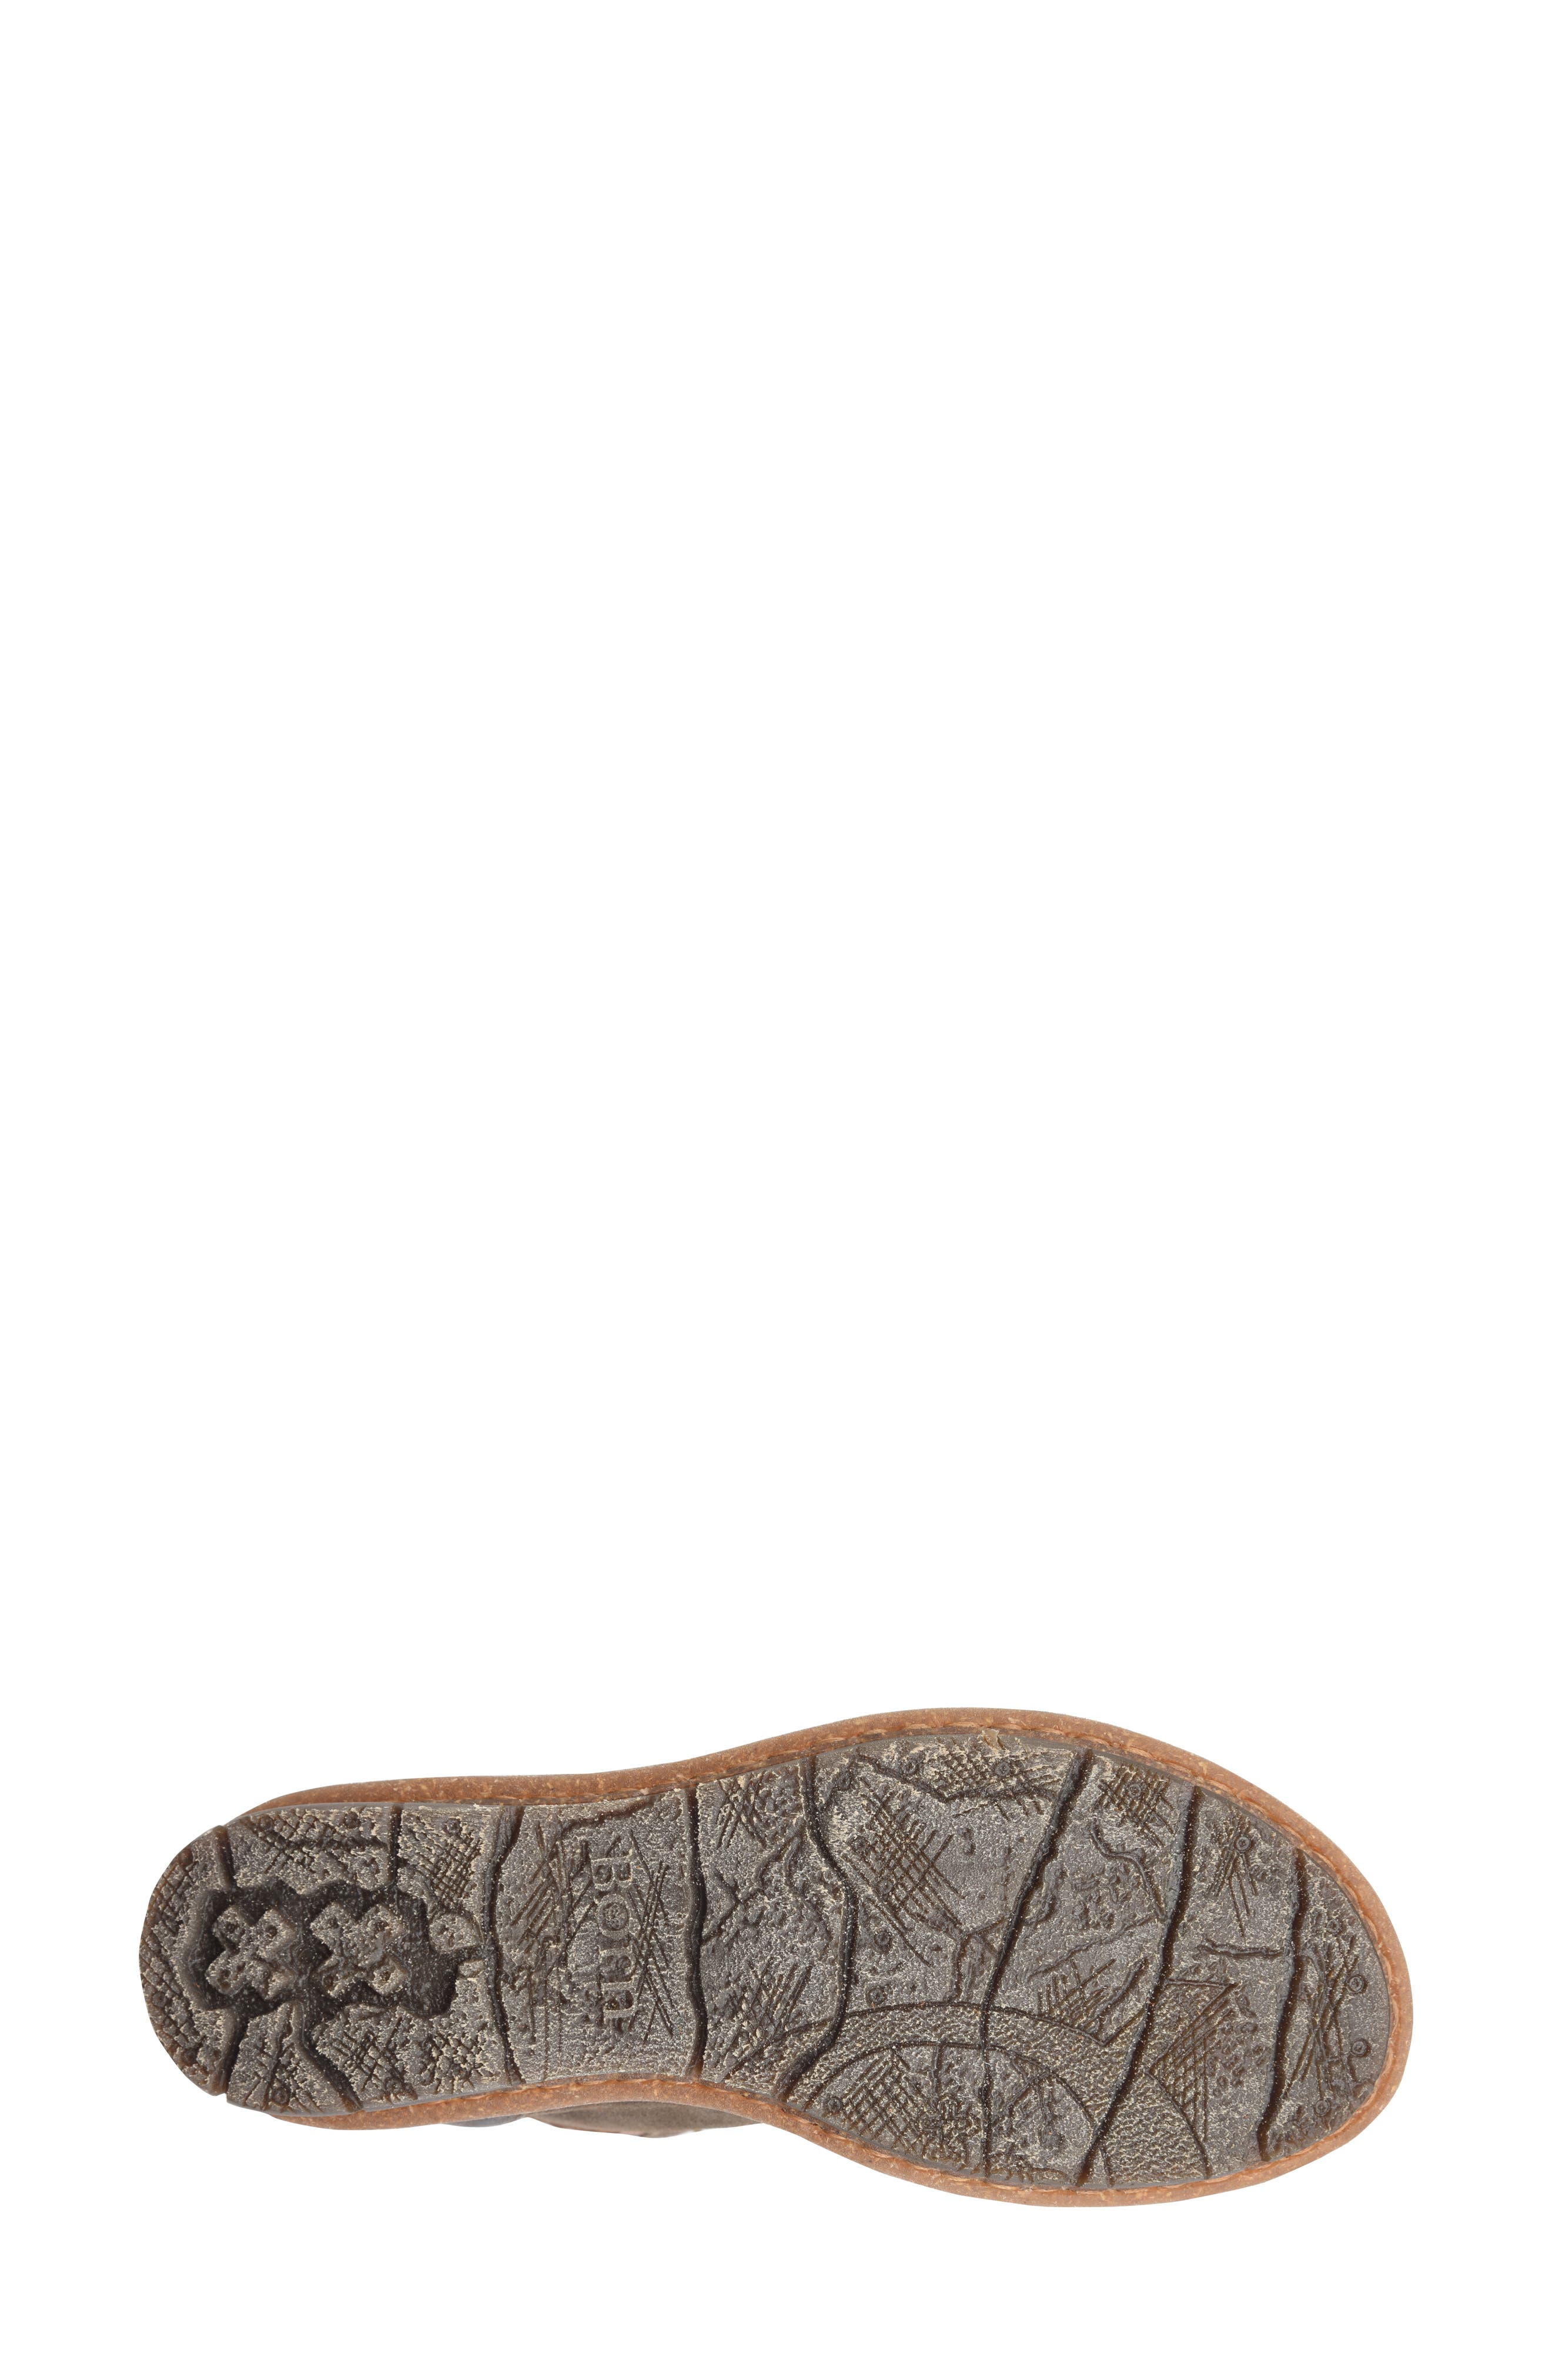 Temple Bootie,                             Alternate thumbnail 6, color,                             TAUPE DISTRESSED LEATHER